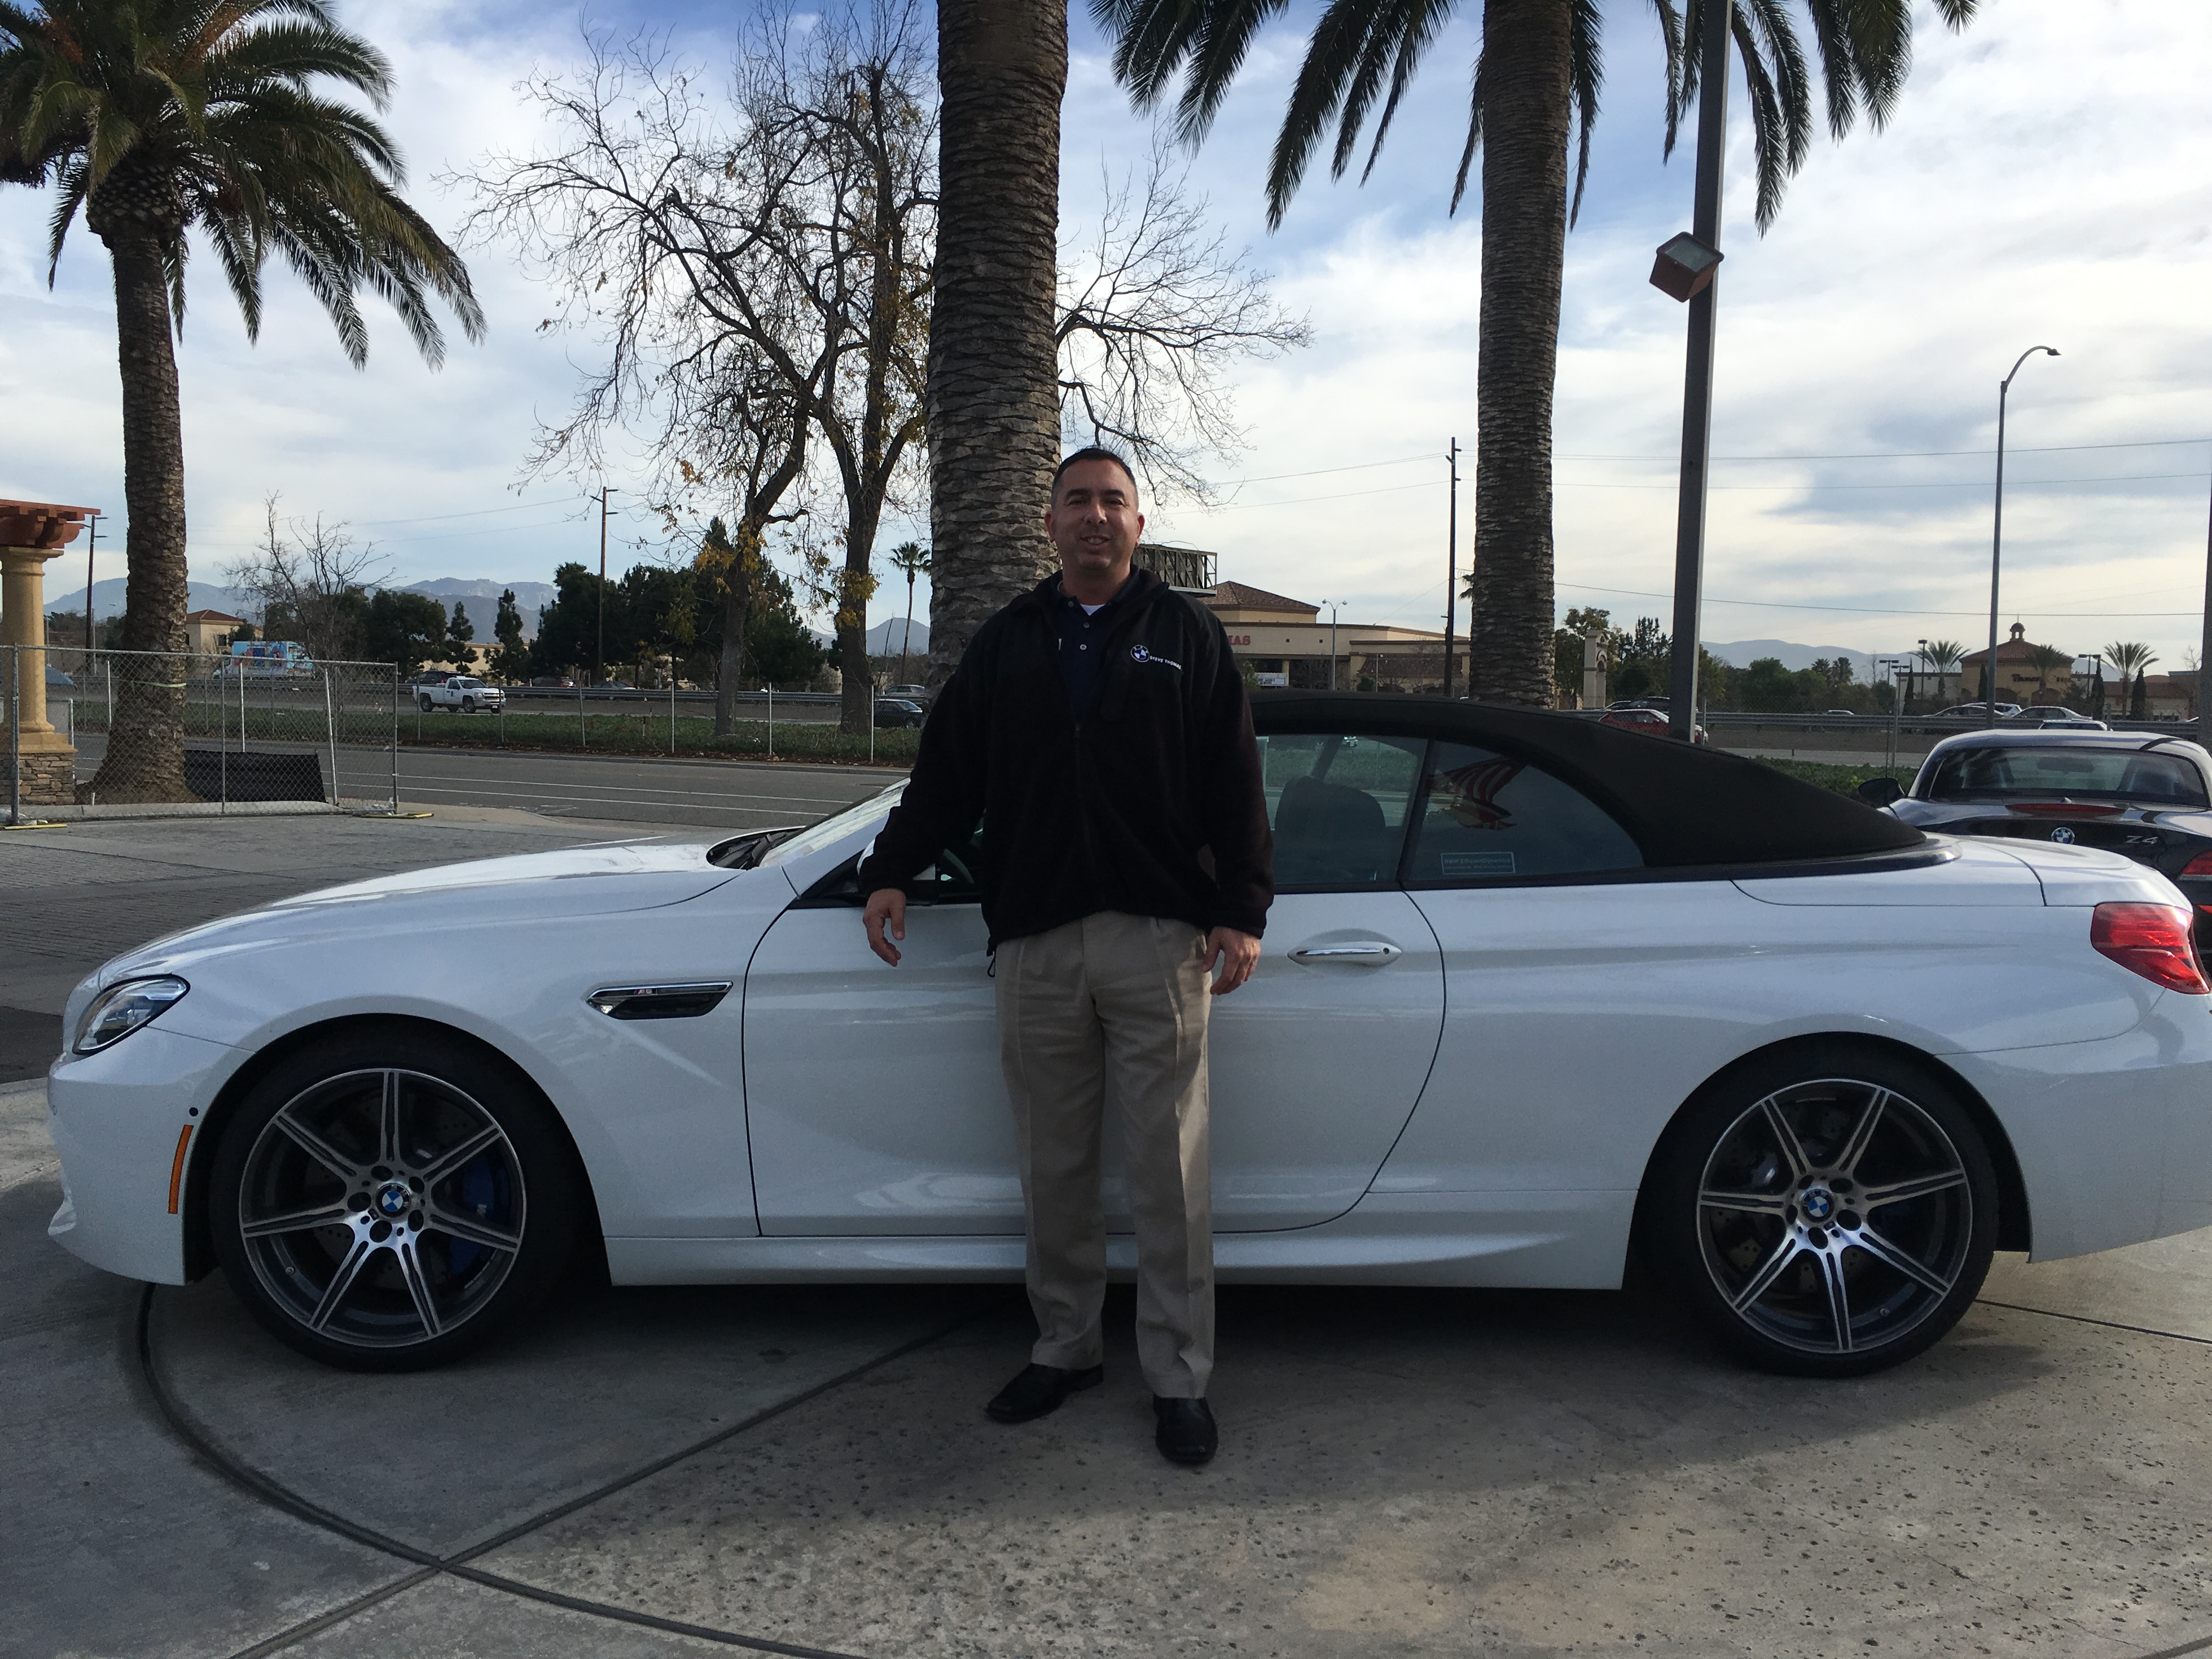 Seize The Day!  A BMW Client Advisor Makes It The Best Day Possible! Chris Uutela, Guest.